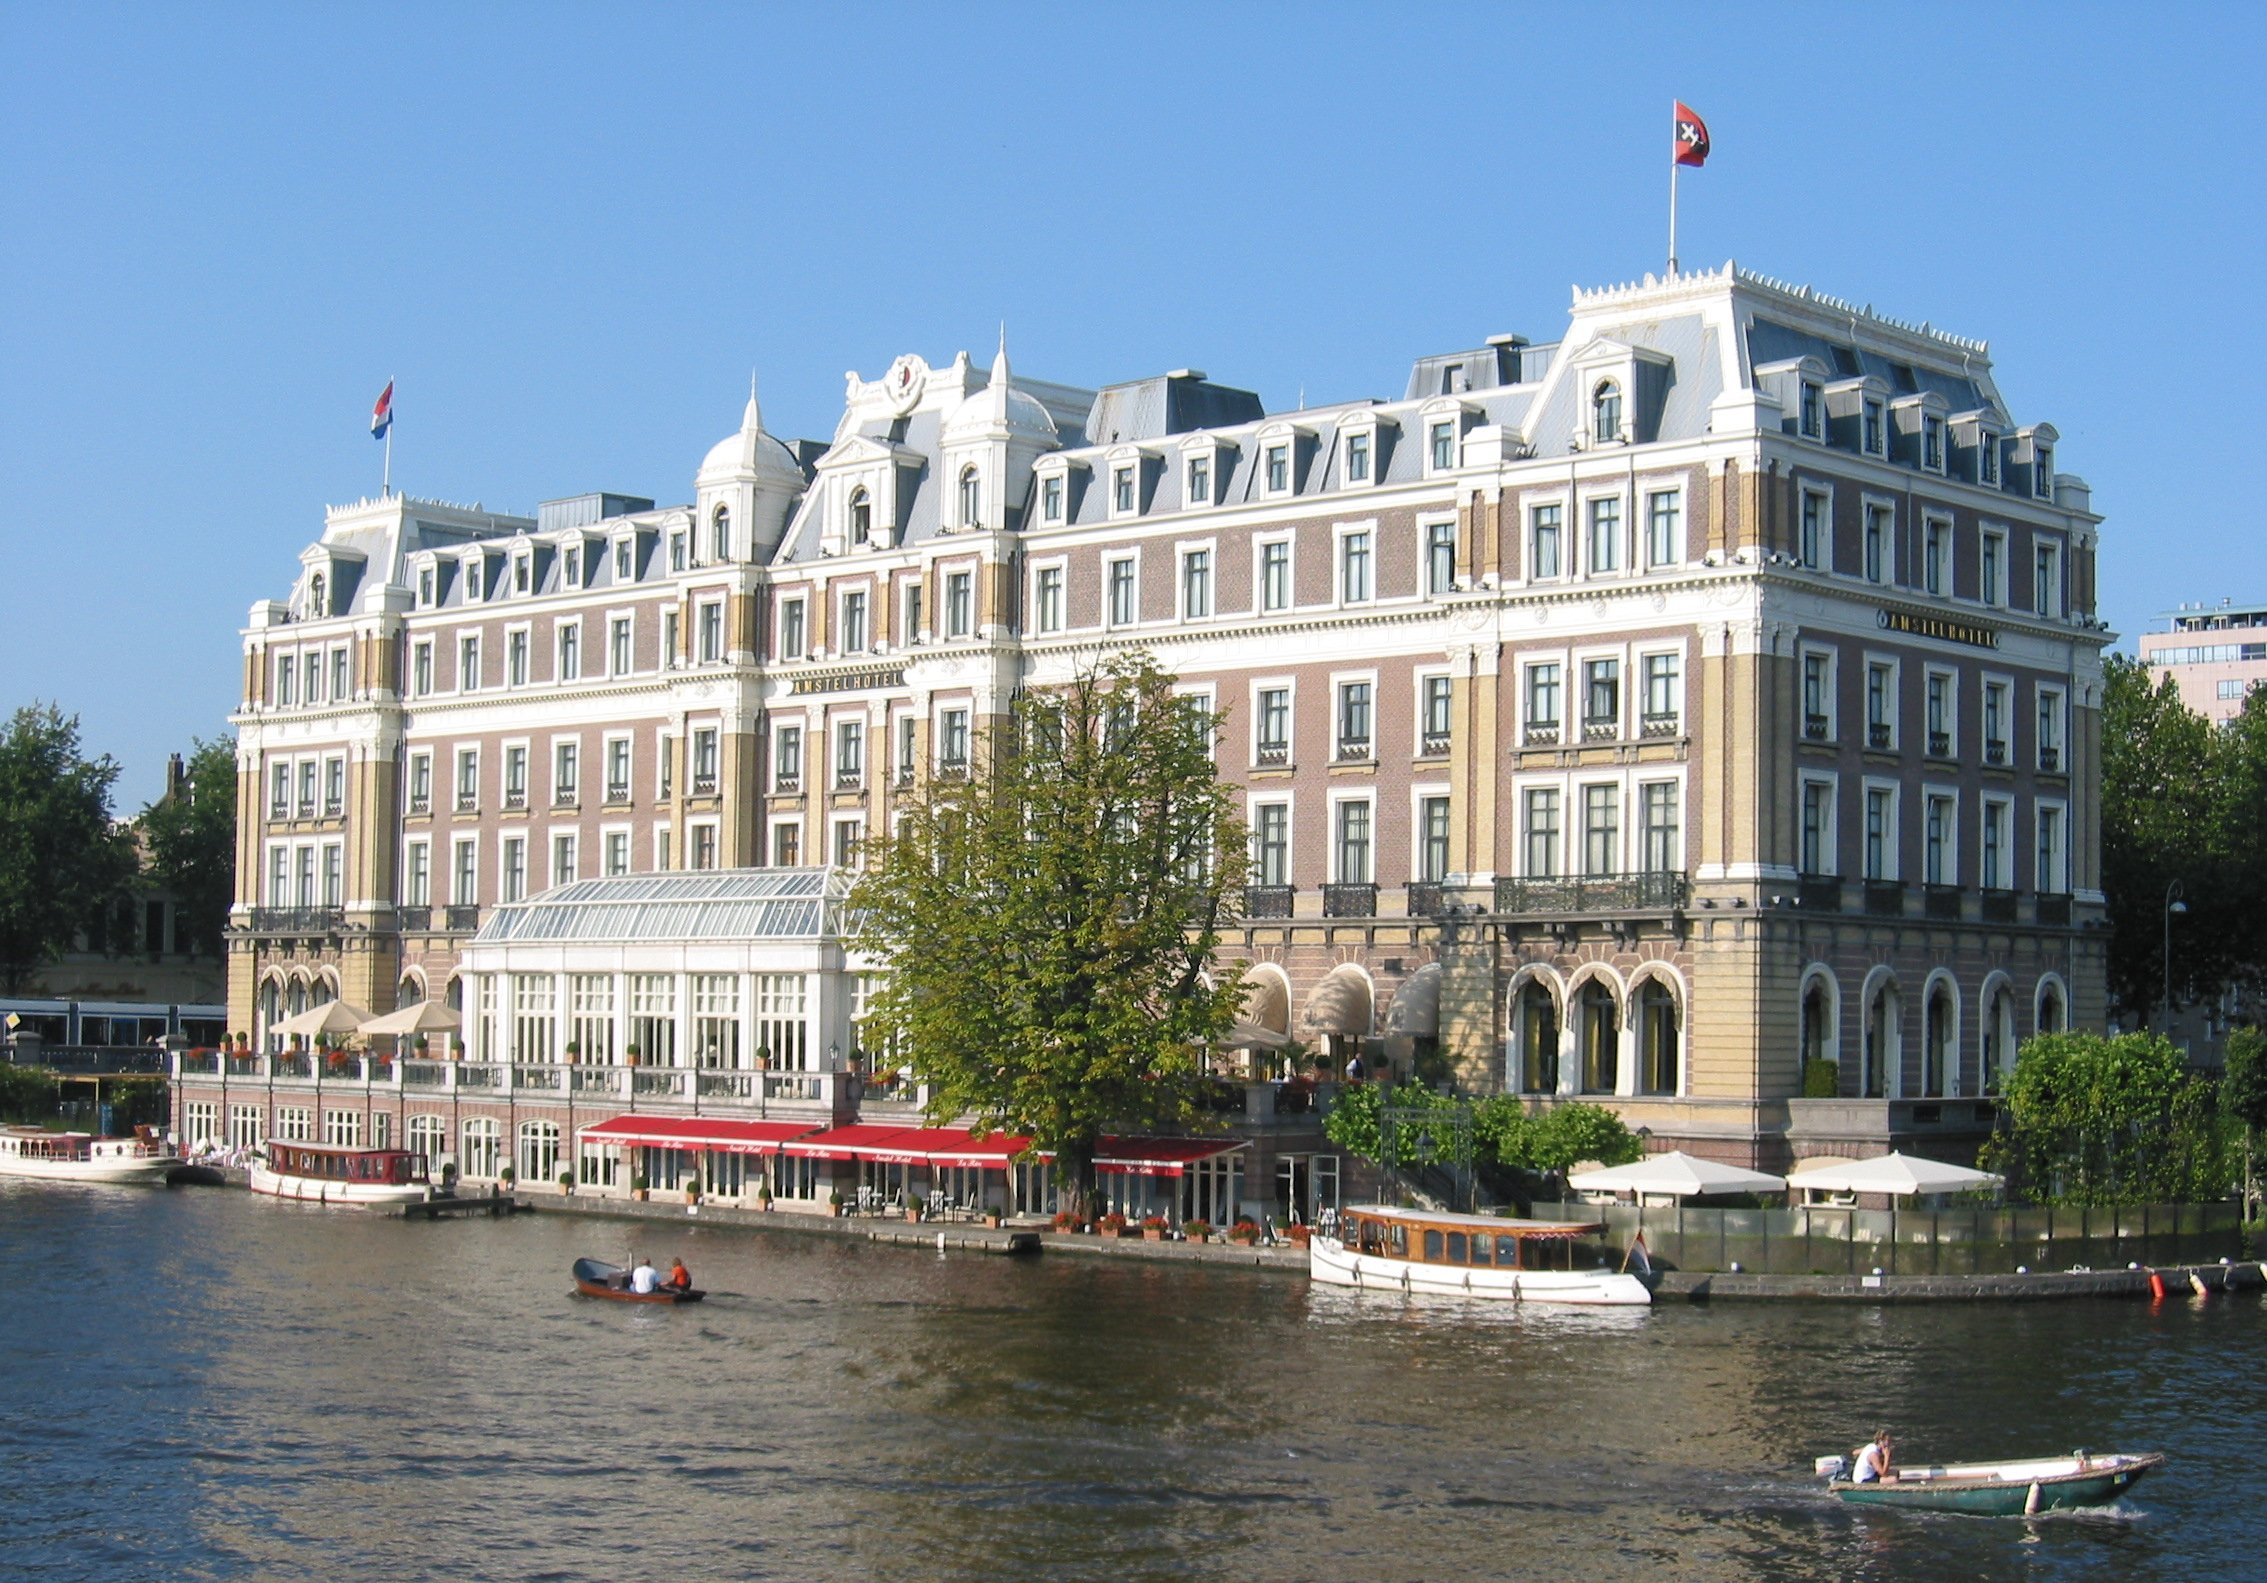 amstel hotel in amsterdam monument